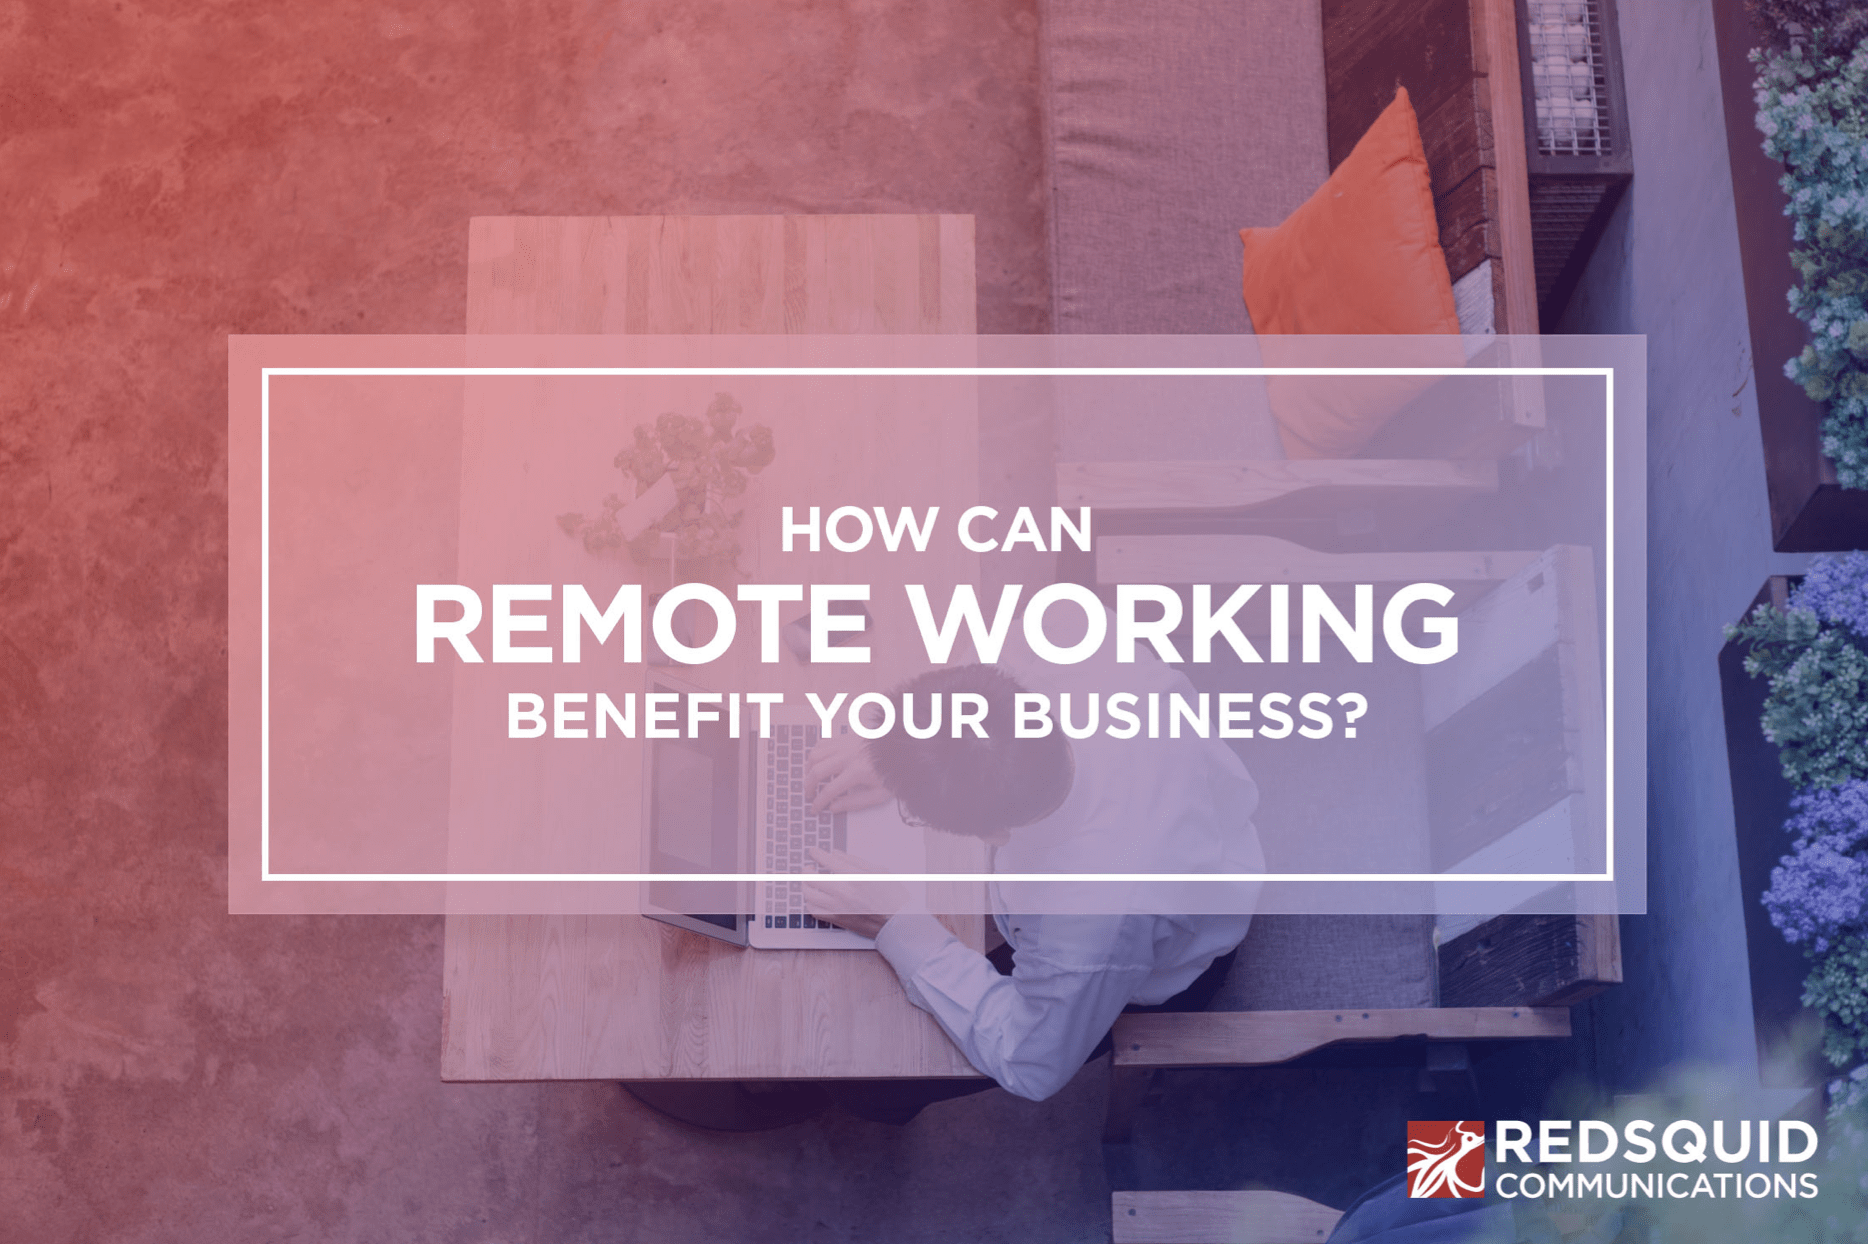 Redsquid-remote-working